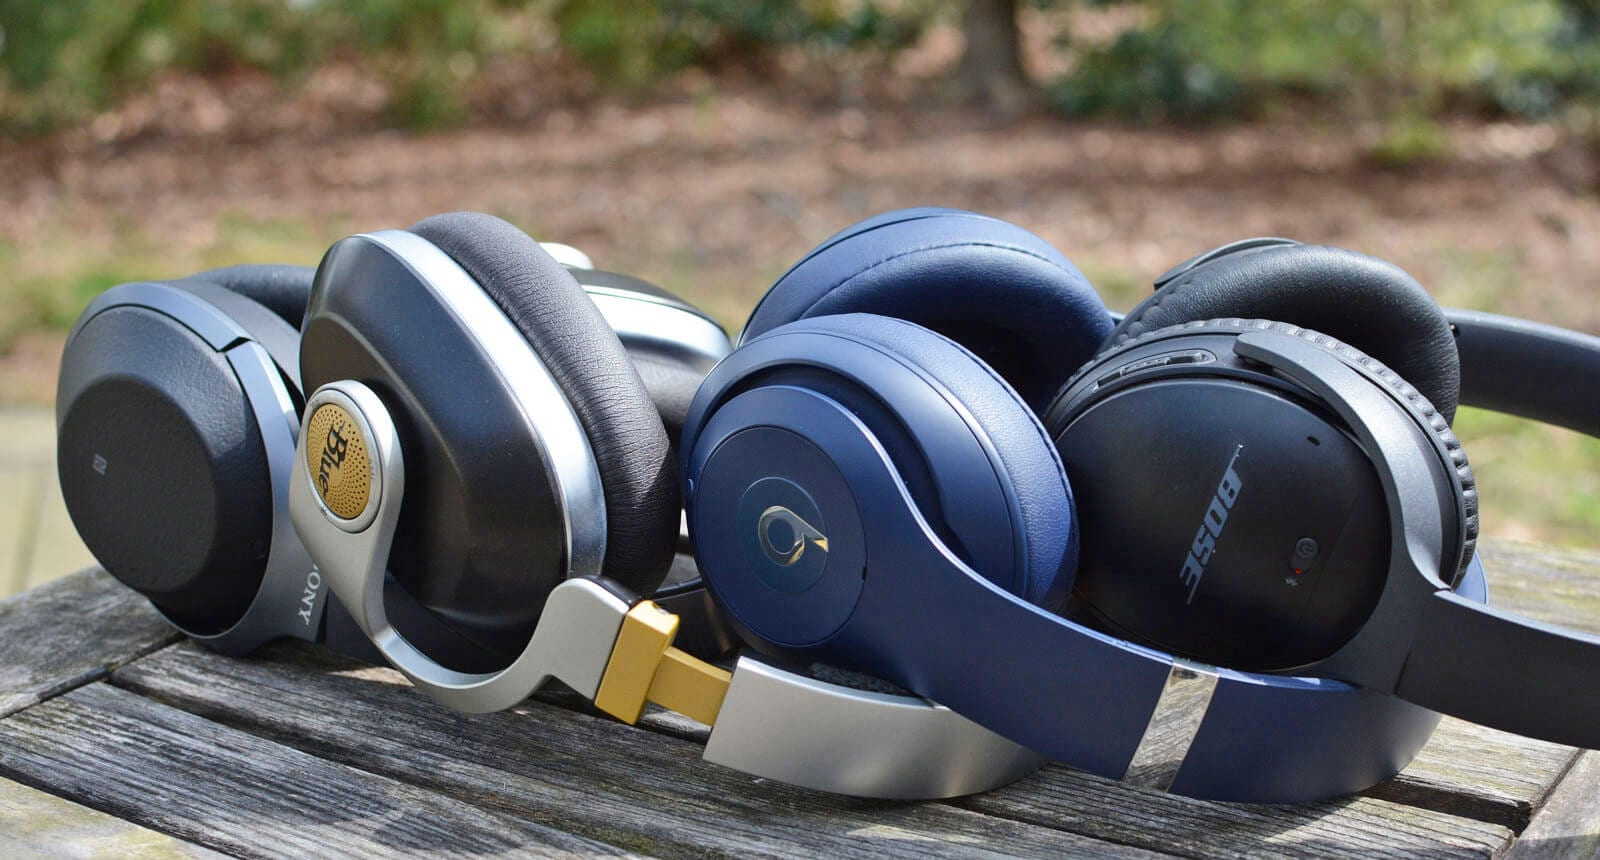 The areas discussed in this article are more than sufficient to help you decide which type of wireless headphones you need according to your use.